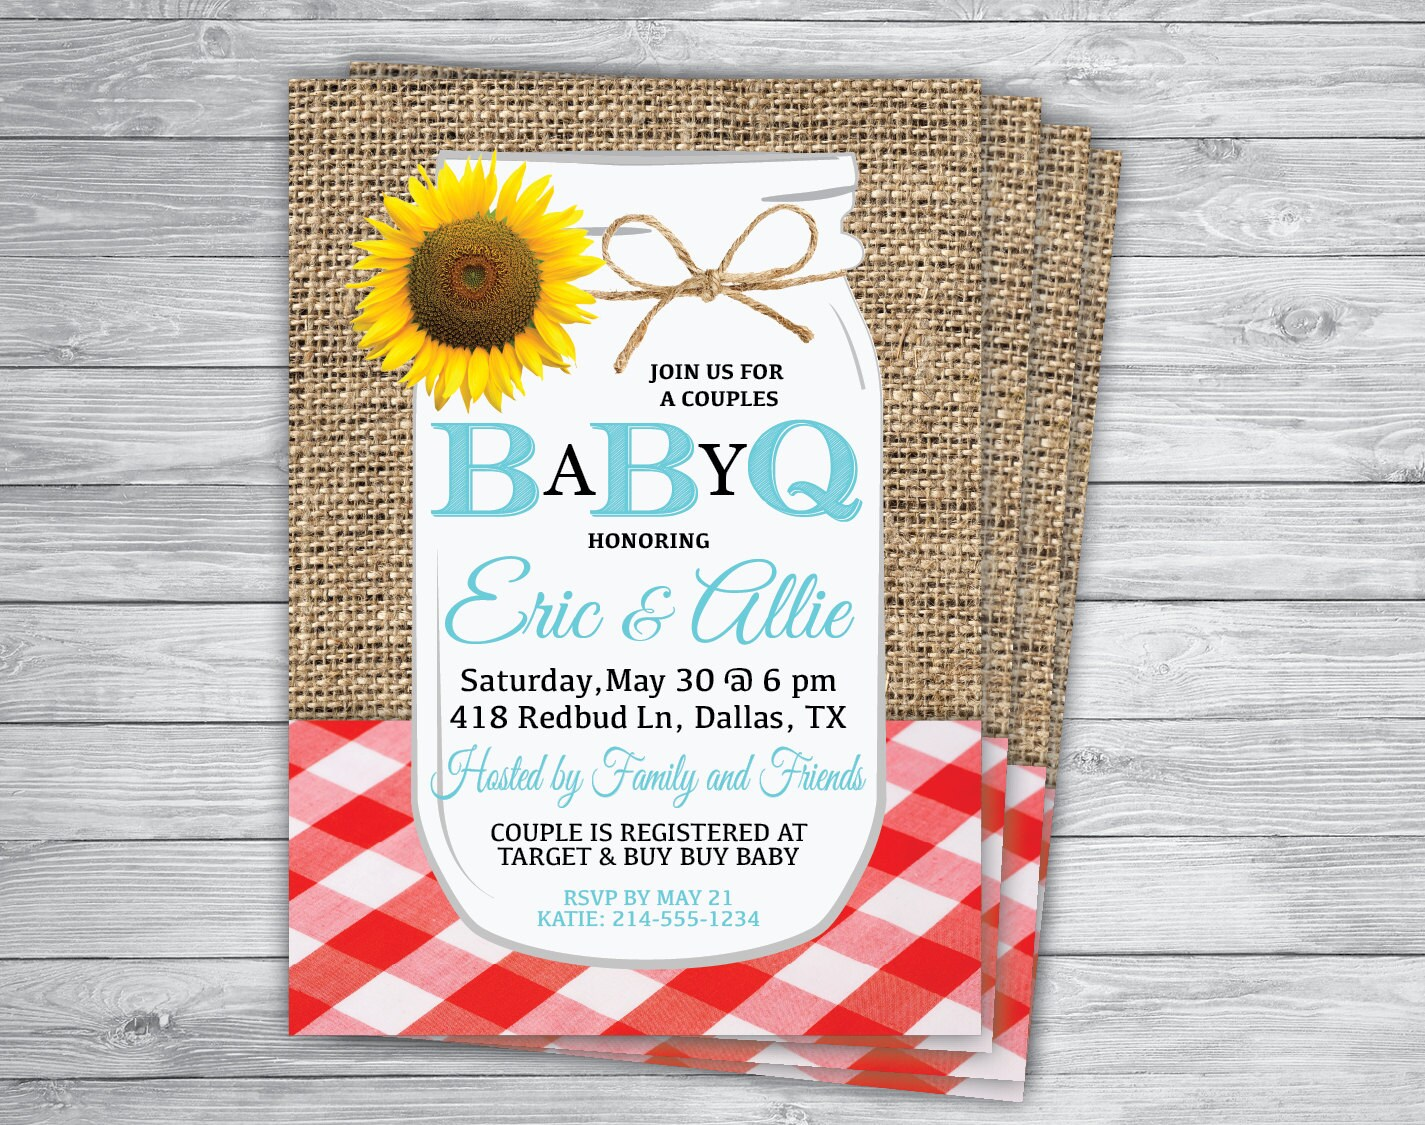 BBQ BABY WEDDING Any Event Or Color Gingham Invitations